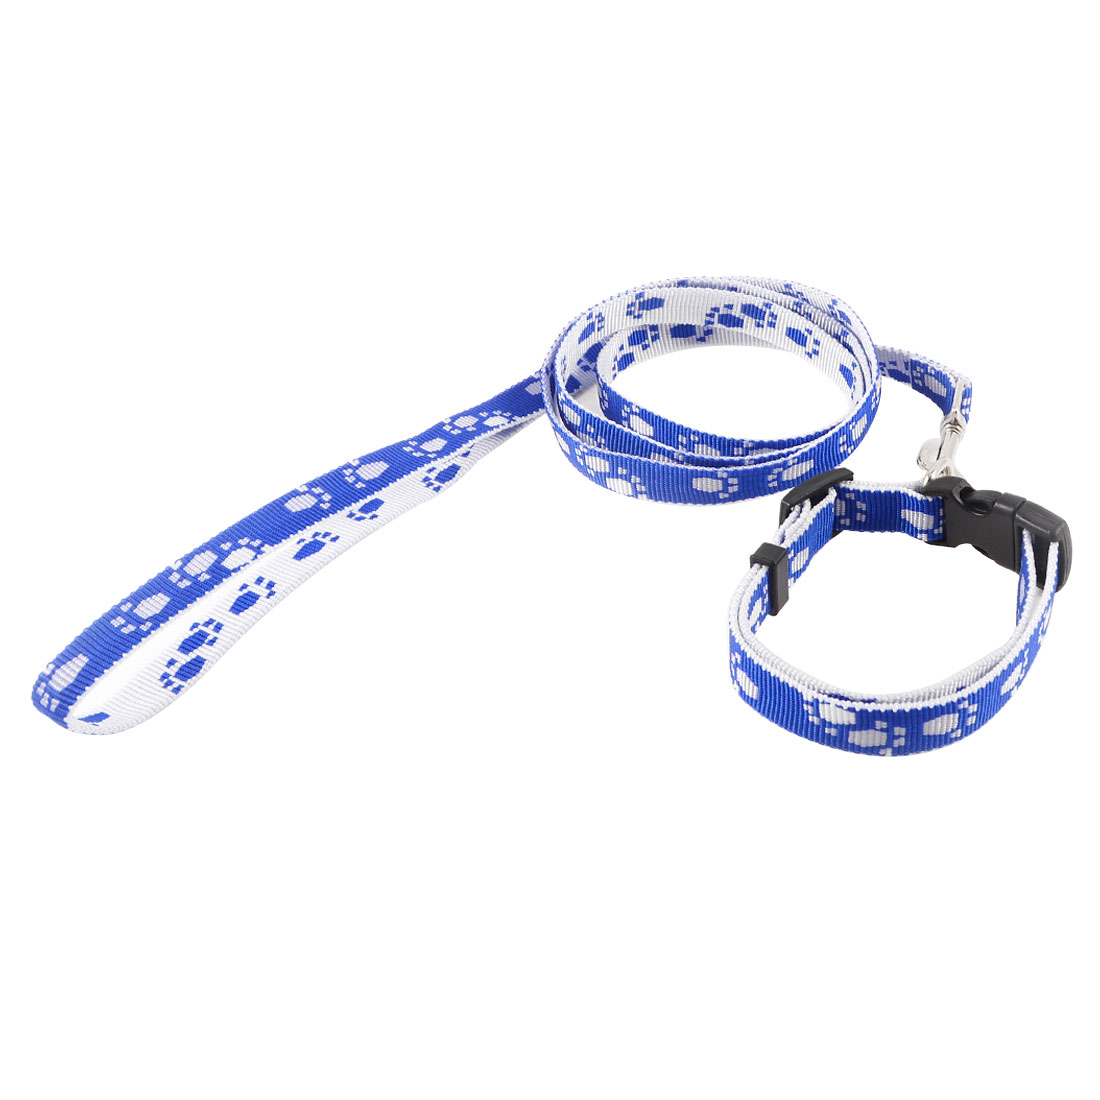 Doggies Dog Textured Nylon Traction Strap Pulling Leash Lead Blue White